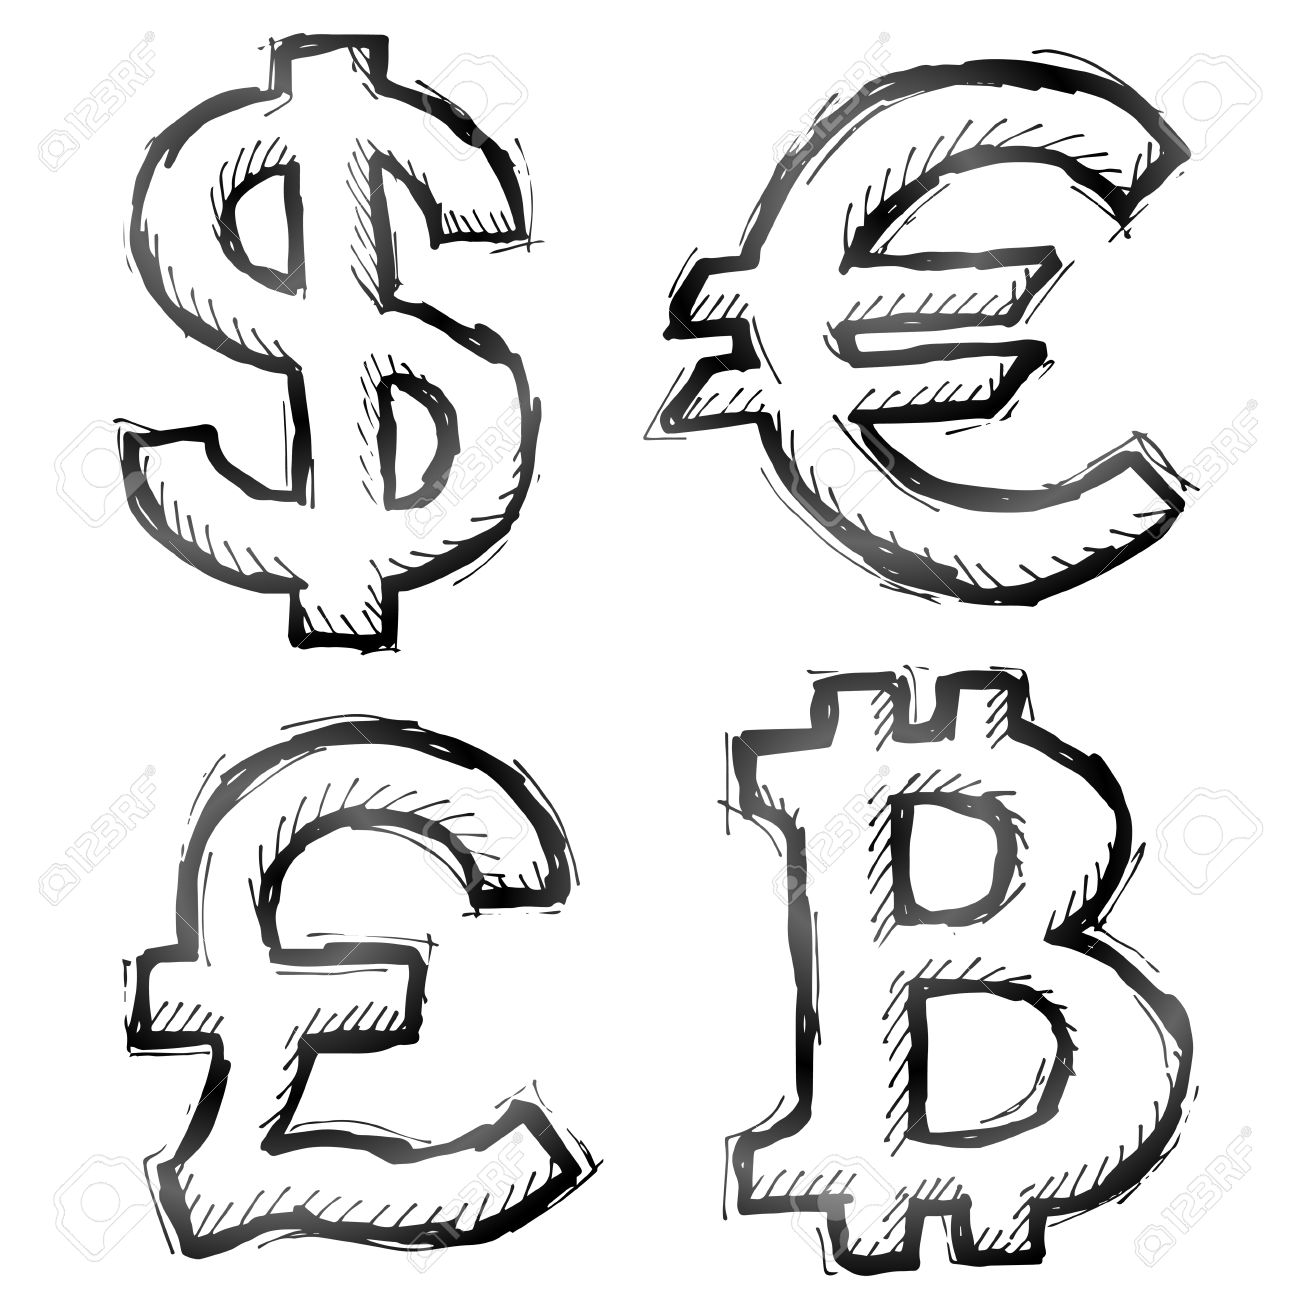 Hand drawn money symbols sketch of currency signs in doodle hand drawn money symbols sketch of currency signs in doodle style stock vector 30521551 biocorpaavc Choice Image